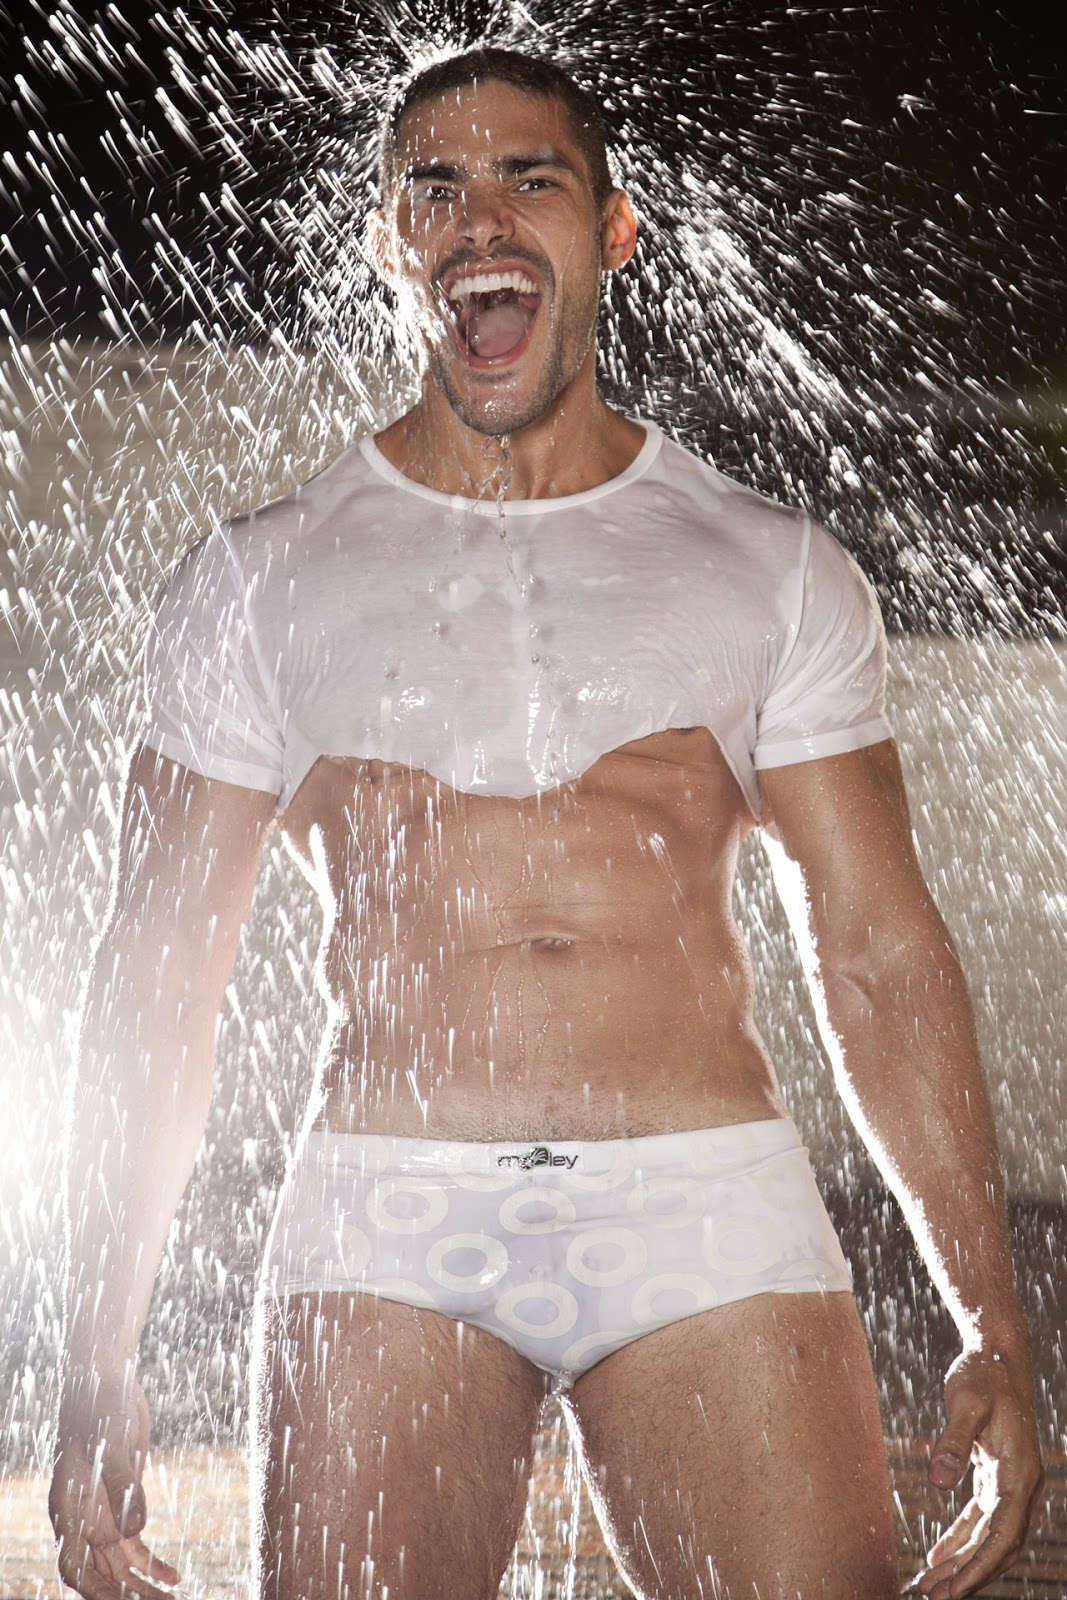 Hot Guys Nude: Wet In White